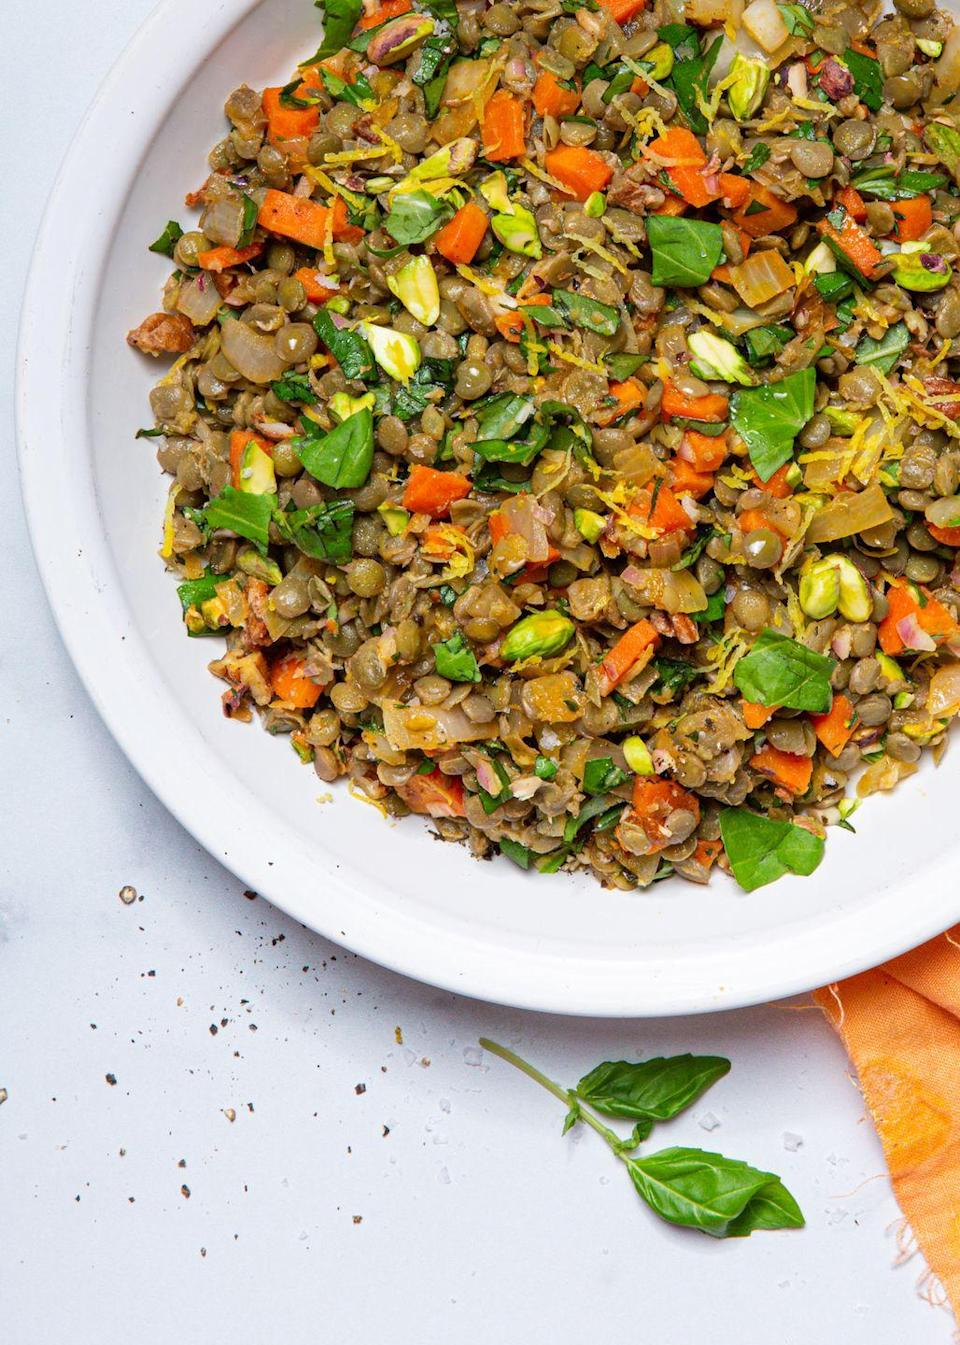 """<p>You'll be bowled over by flavor!</p><p>Get the recipe from <a href=""""https://www.delish.com/cooking/recipe-ideas/a32292934/lentil-salad-recipe/"""" rel=""""nofollow noopener"""" target=""""_blank"""" data-ylk=""""slk:Delish"""" class=""""link rapid-noclick-resp"""">Delish</a>.<br></p>"""